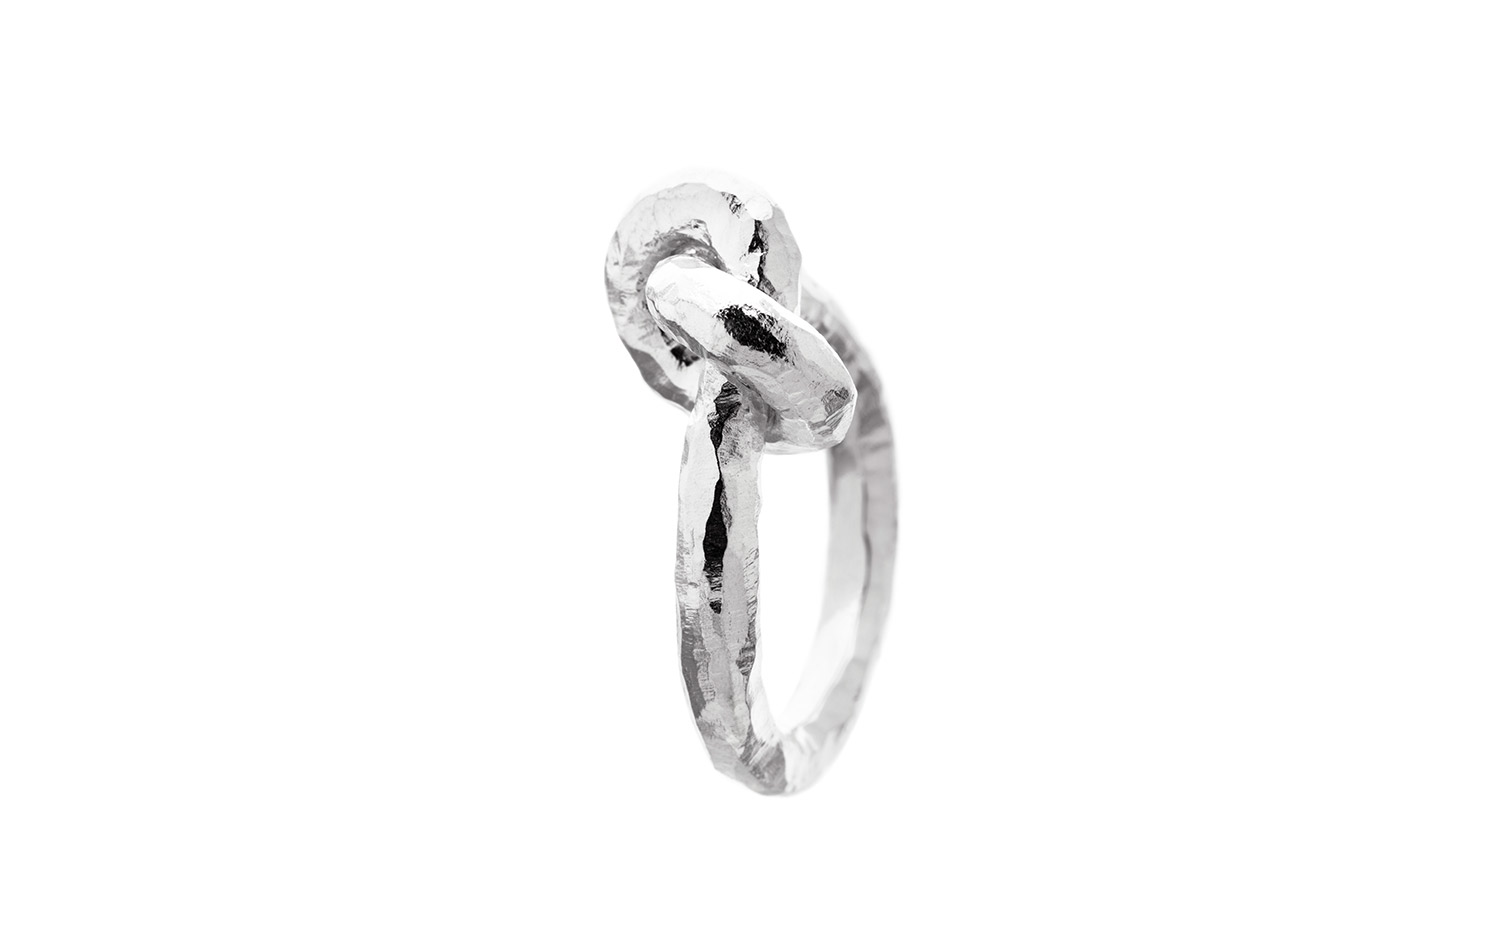 c4f47acd3a7c Knut RING – August Petersson & Son AB